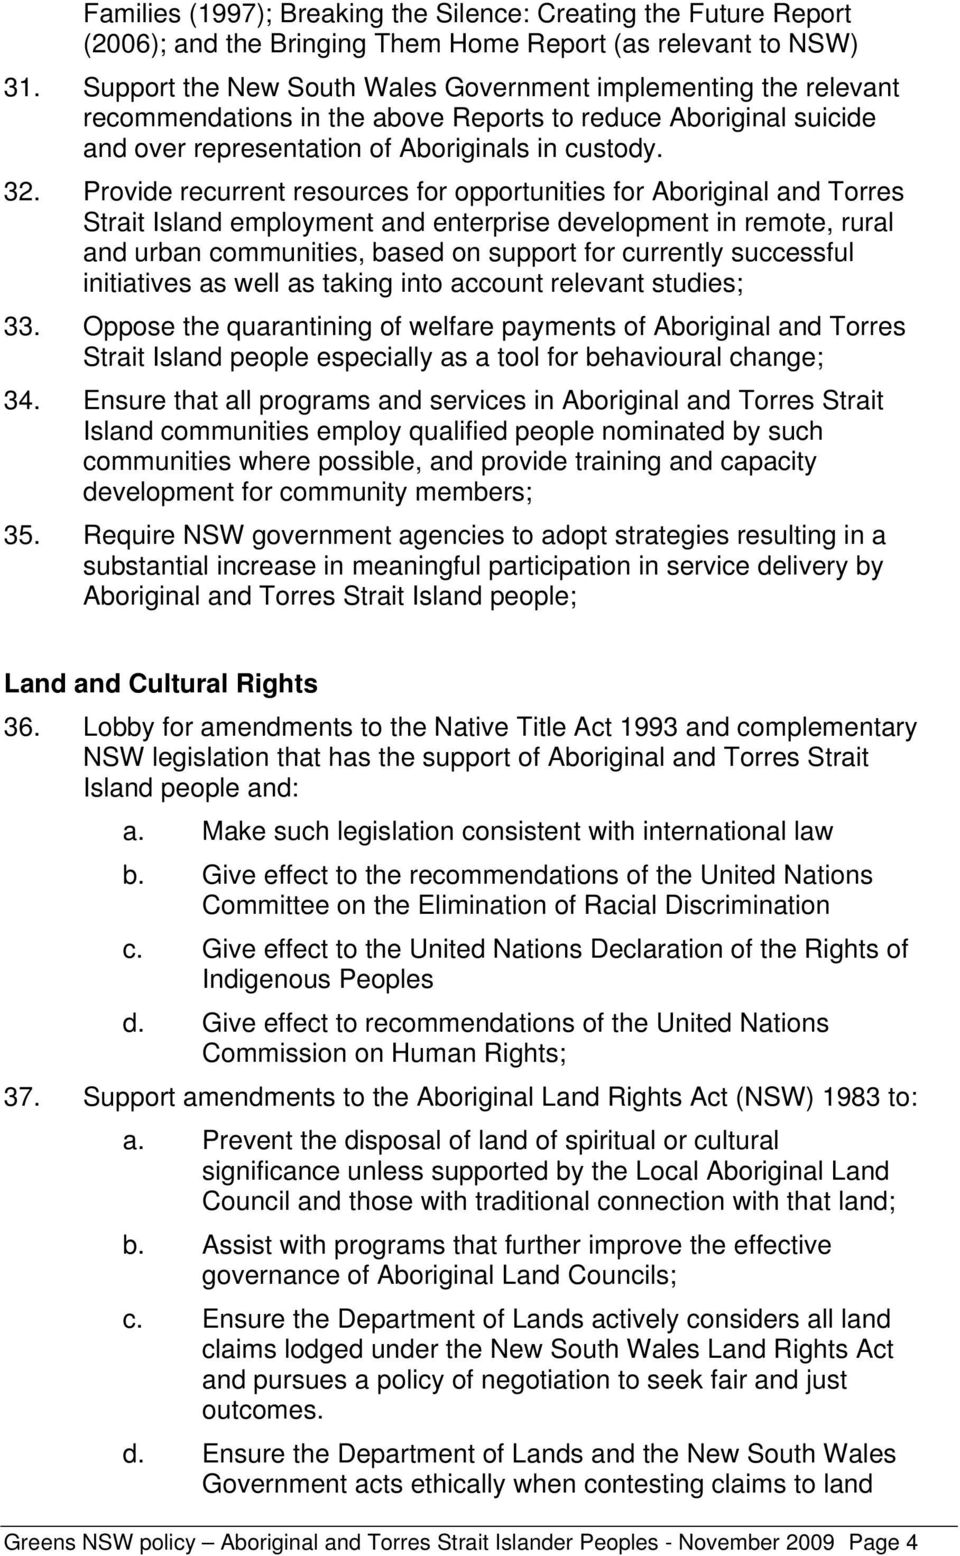 Provide recurrent resources for opportunities for Aboriginal and Torres Strait Island employment and enterprise development in remote, rural and urban communities, based on support for currently